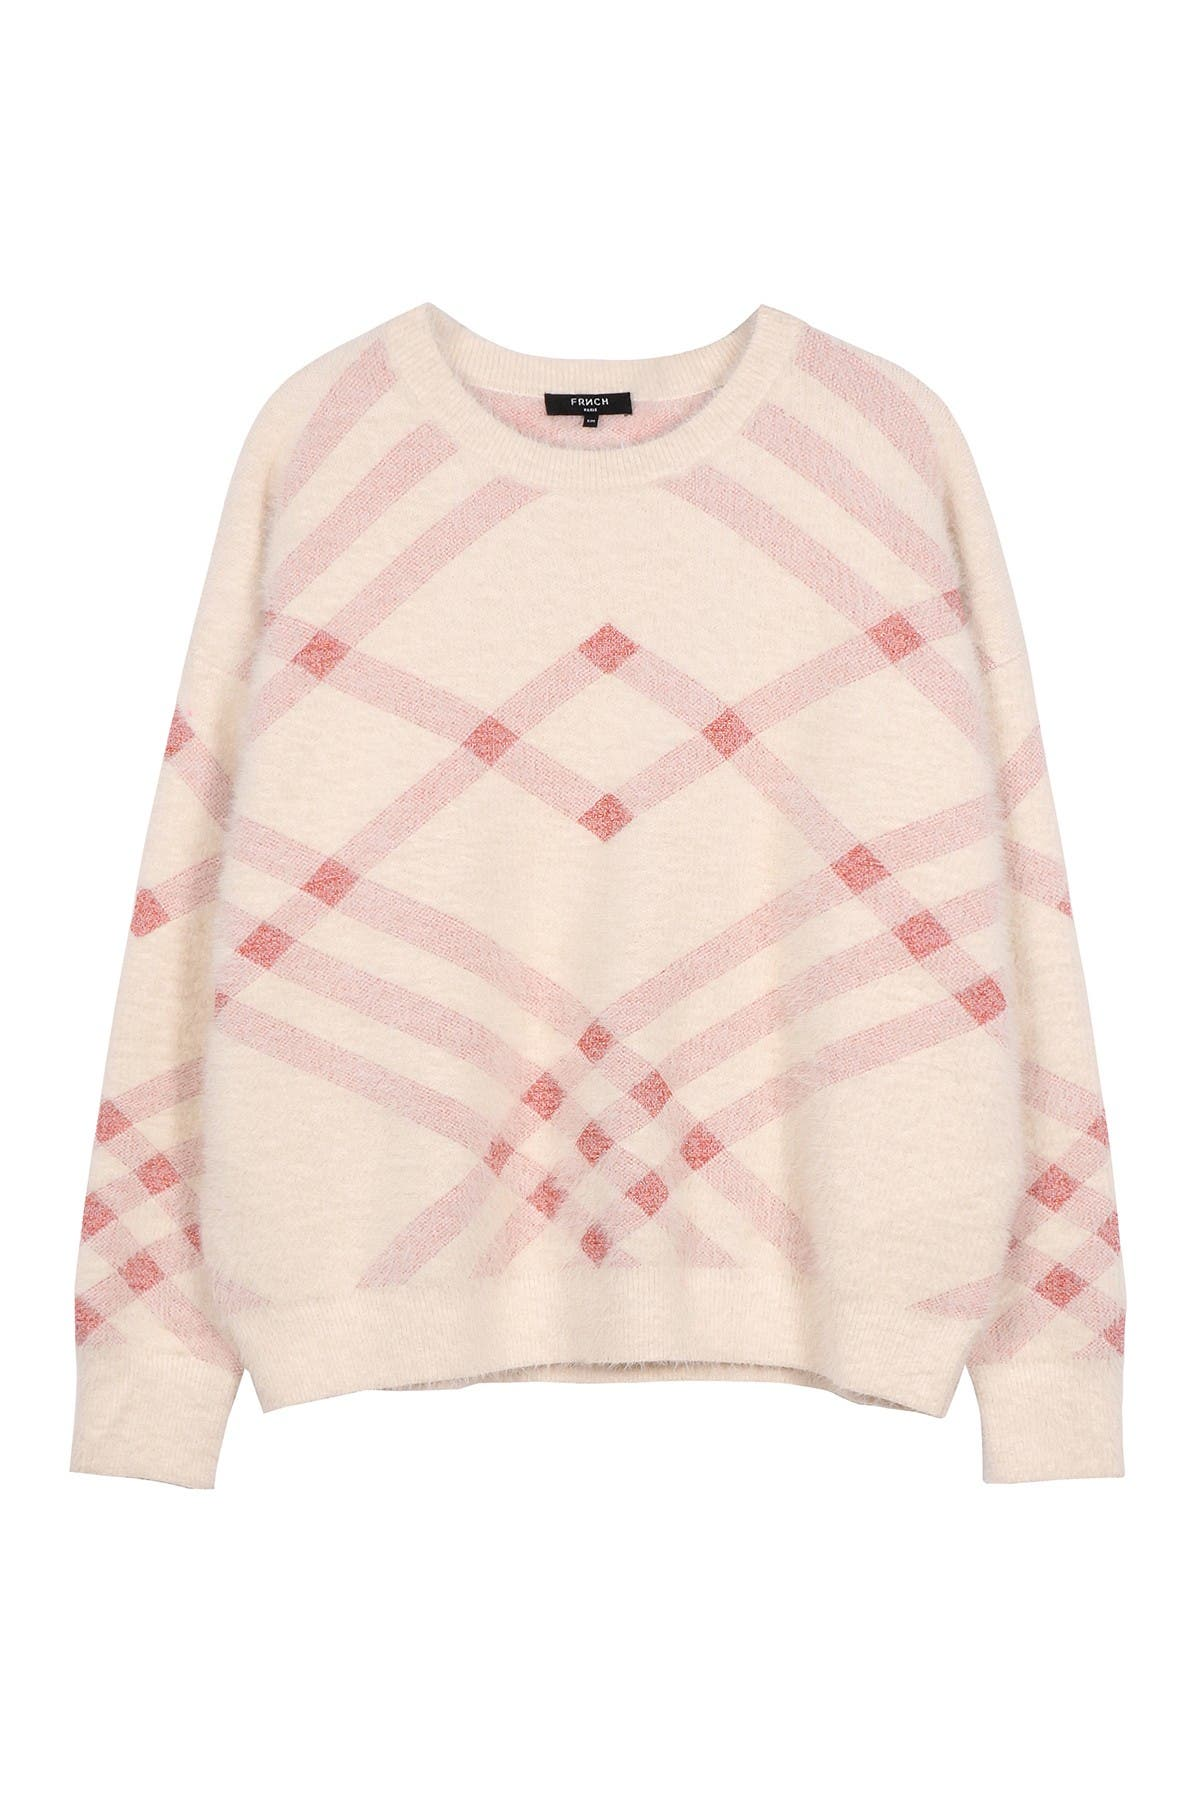 Image of FRNCH Plaid Crew Neck Sweater